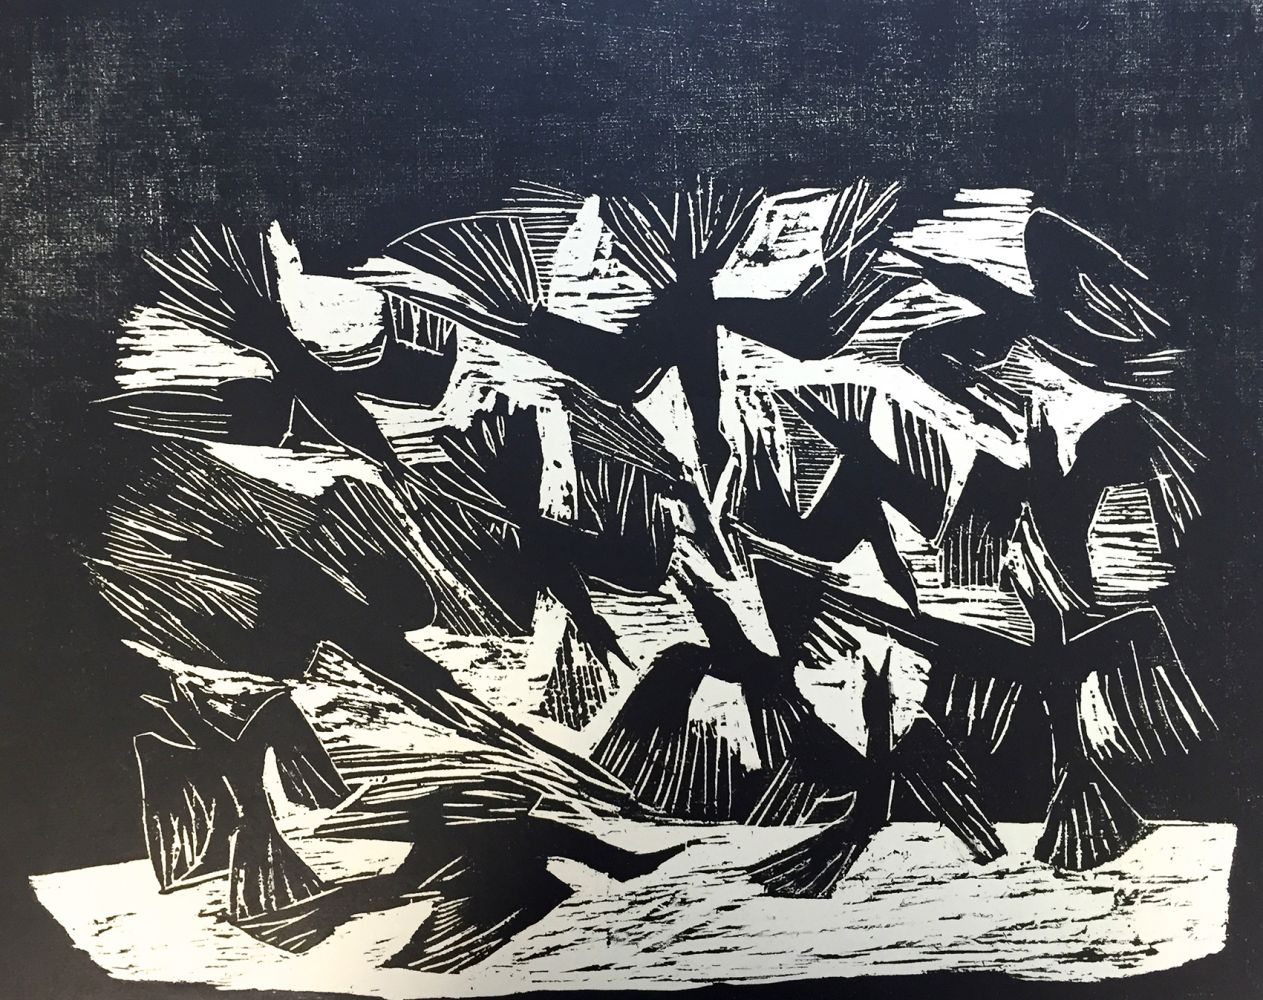 Erwin Hahs | The Hungry | 1960 | woodcut | signed, dated and titled | 49,5 x 39,5